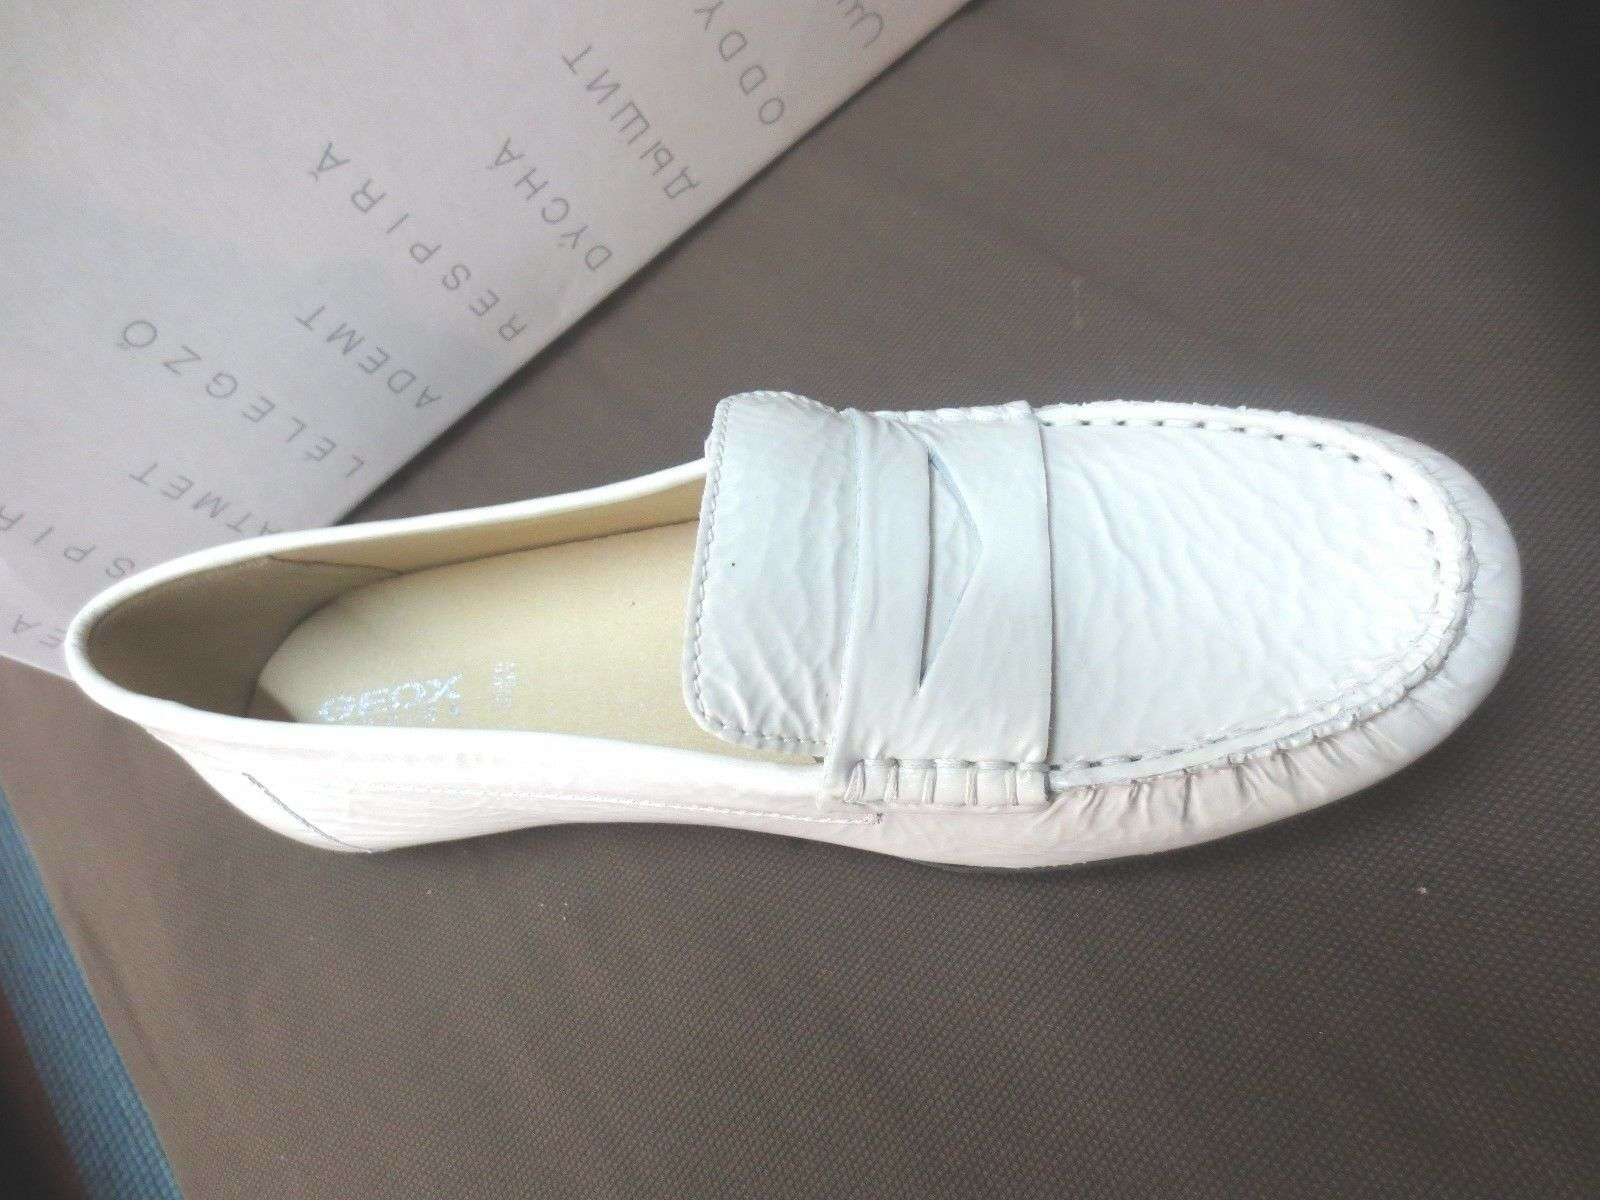 Geox Geox Geox Mocassin off white Neuf Valeur 110E Pointures 36,36.5,37,37.5,38,38.5,39,40 8f740b